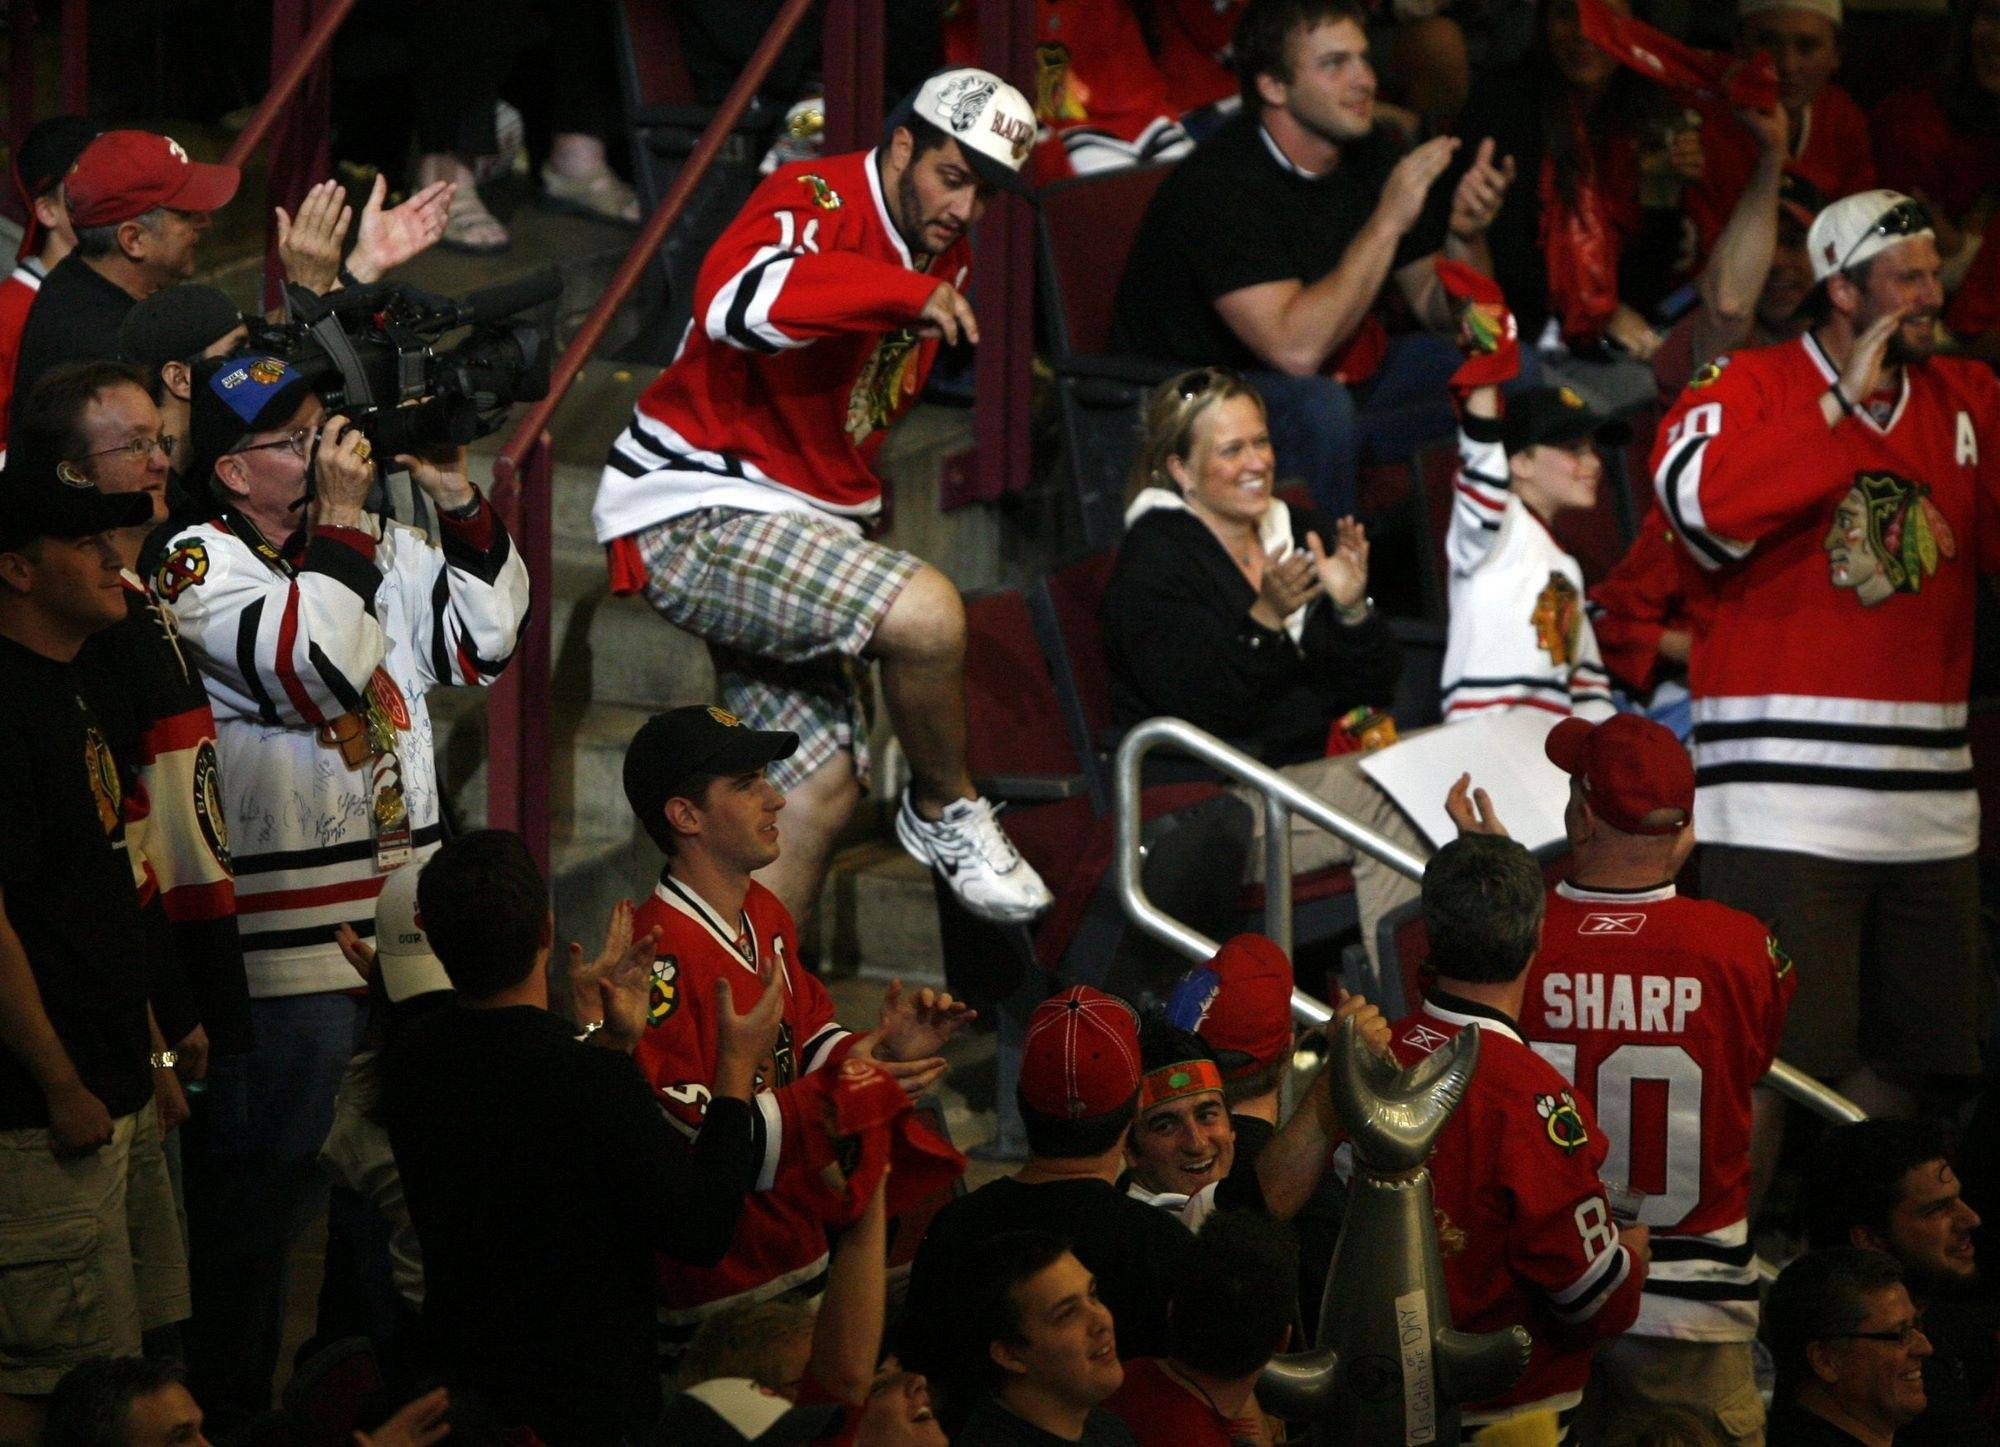 The Chicago Blackhawks win the Western Conference title against the San Jose Sharks at the United Center in Chicago on Sunday.